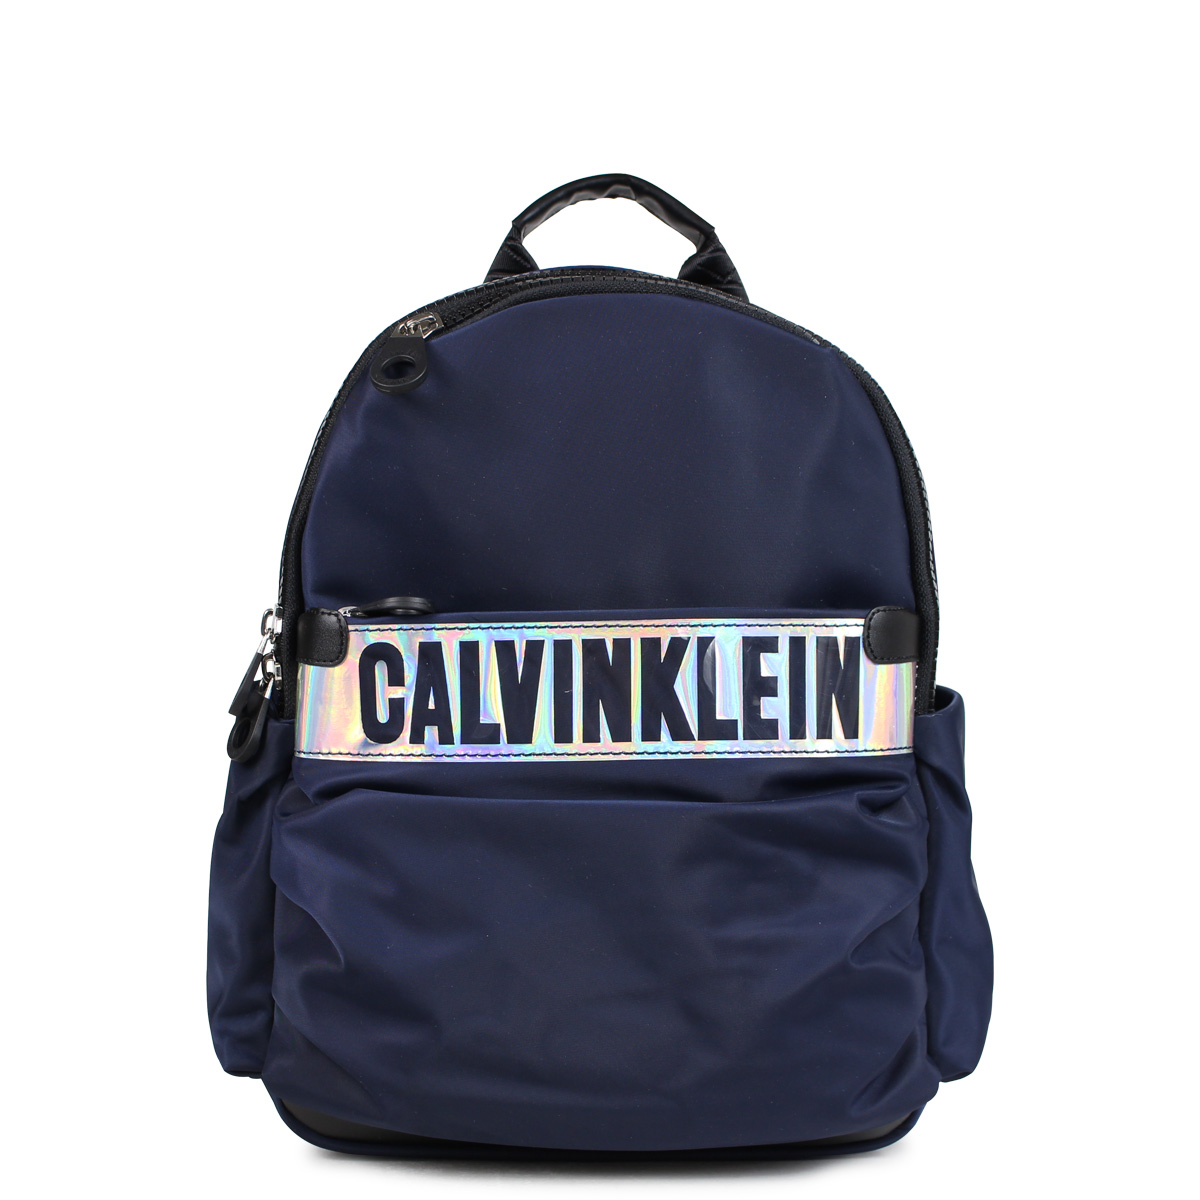 7bd19f53f46 Calvin Klein ATHLEISURE LARGE BACKPACK Calvin Klein bag men rucksack bag  pack navy H8AKE7YF [7 ...